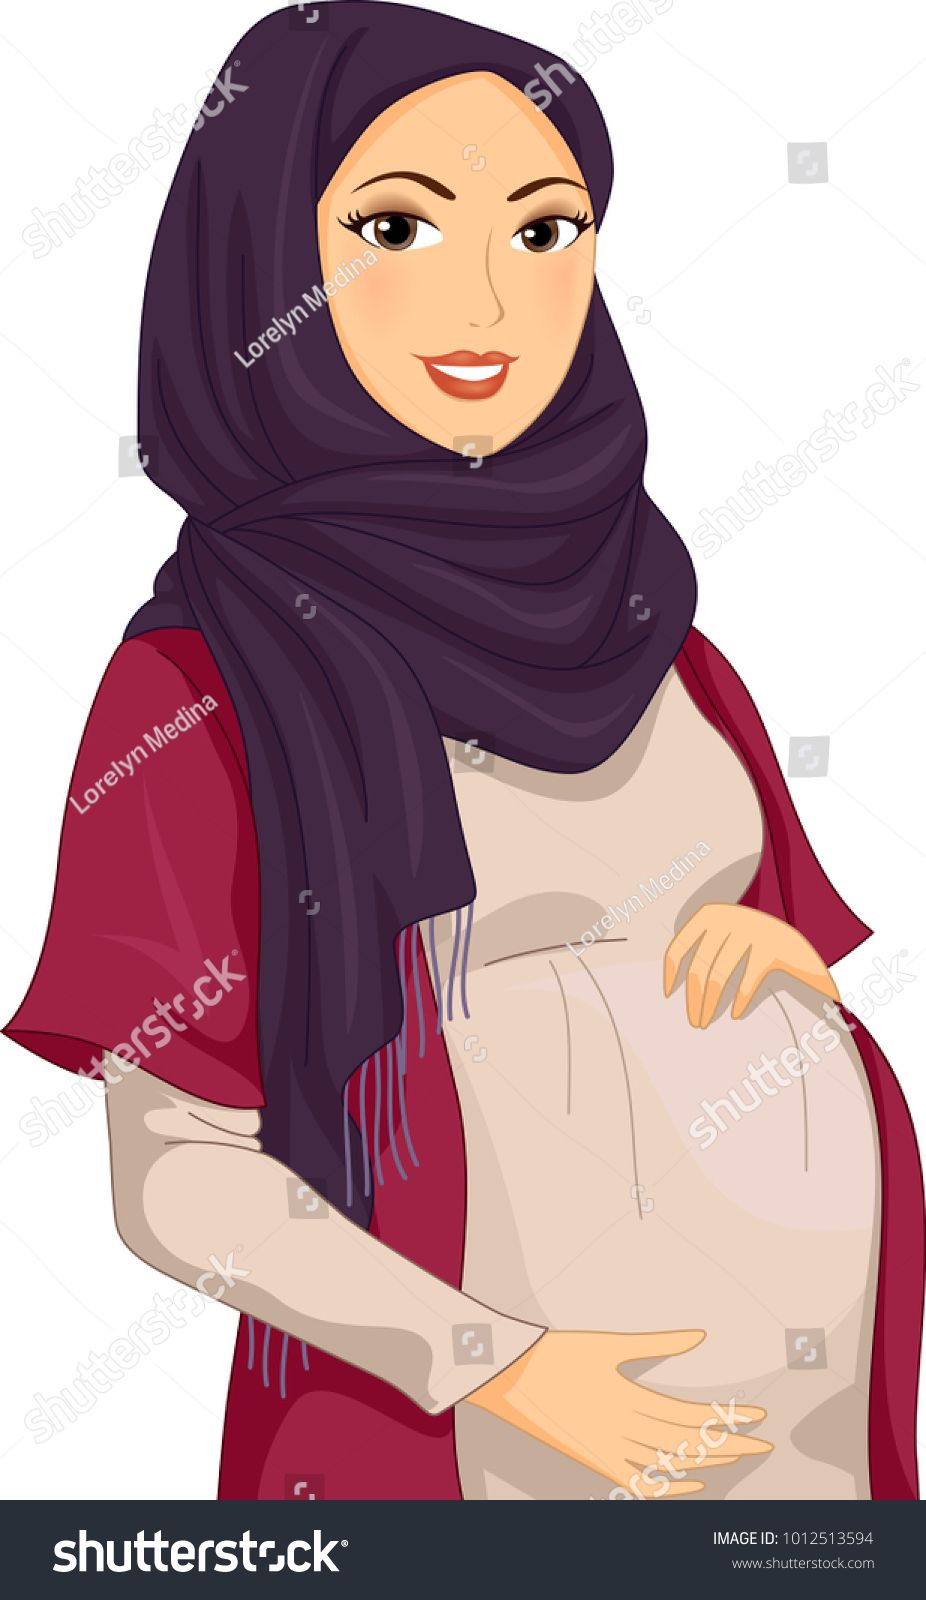 Illustration of a Pregnant Muslim Girl Wearing Hijab